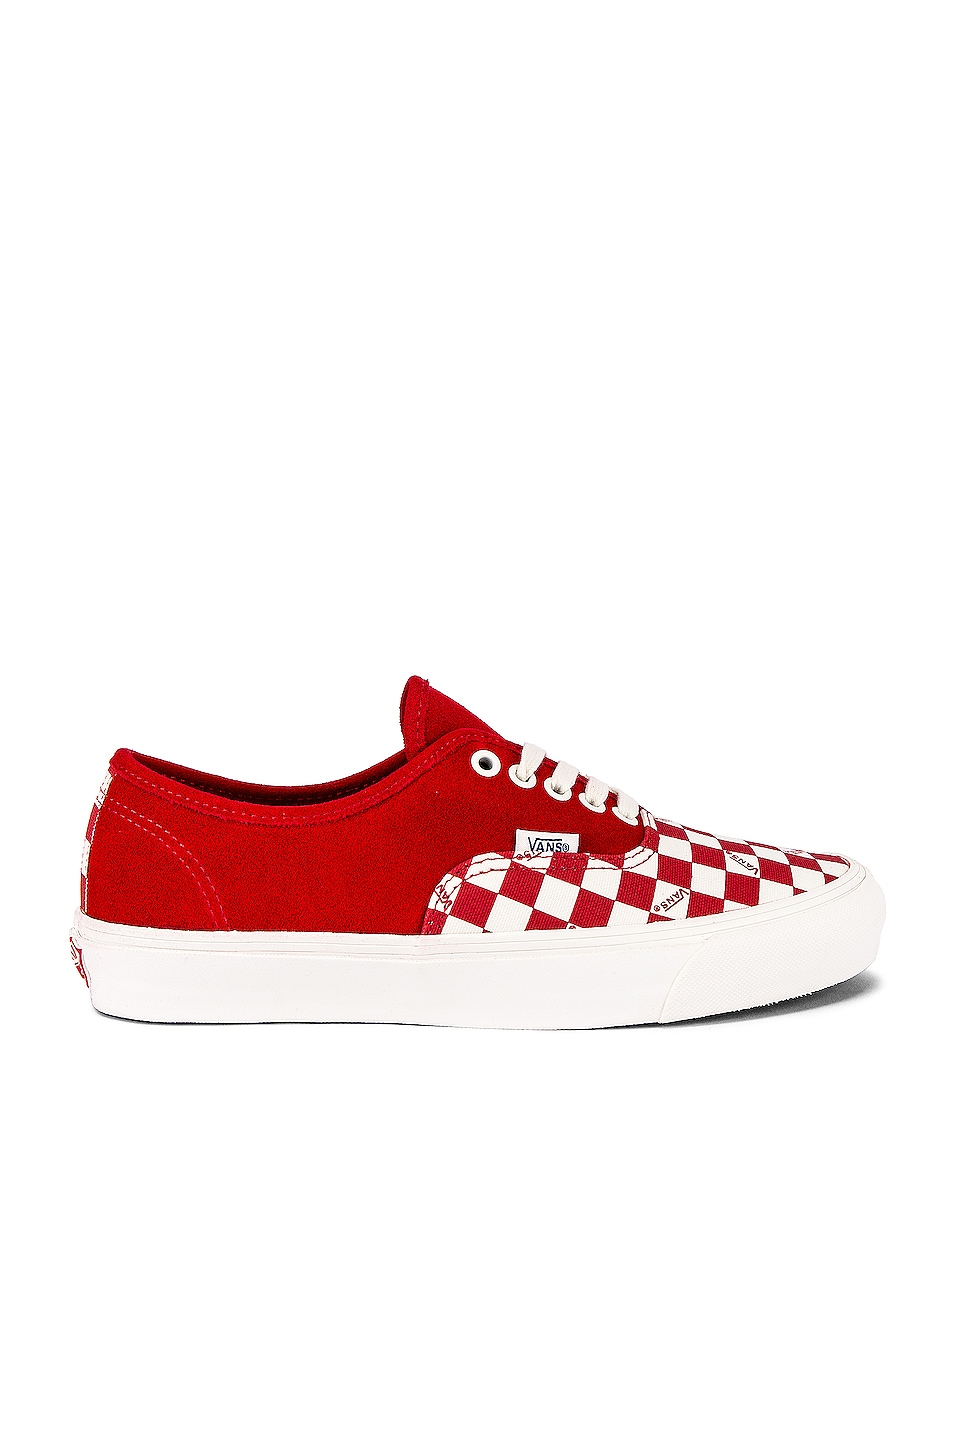 Image 2 of Vans Vault OG Authentic LX in Racing Red & Checkerboard